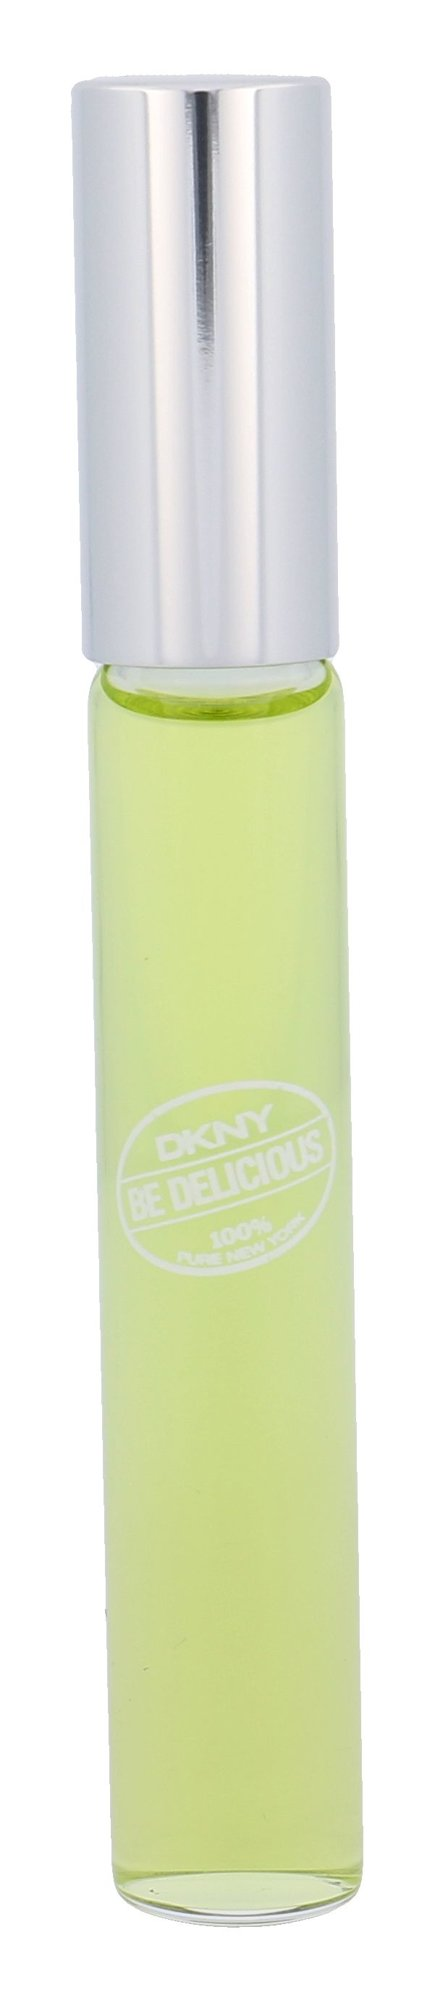 DKNY DKNY Be Delicious EDP 10ml